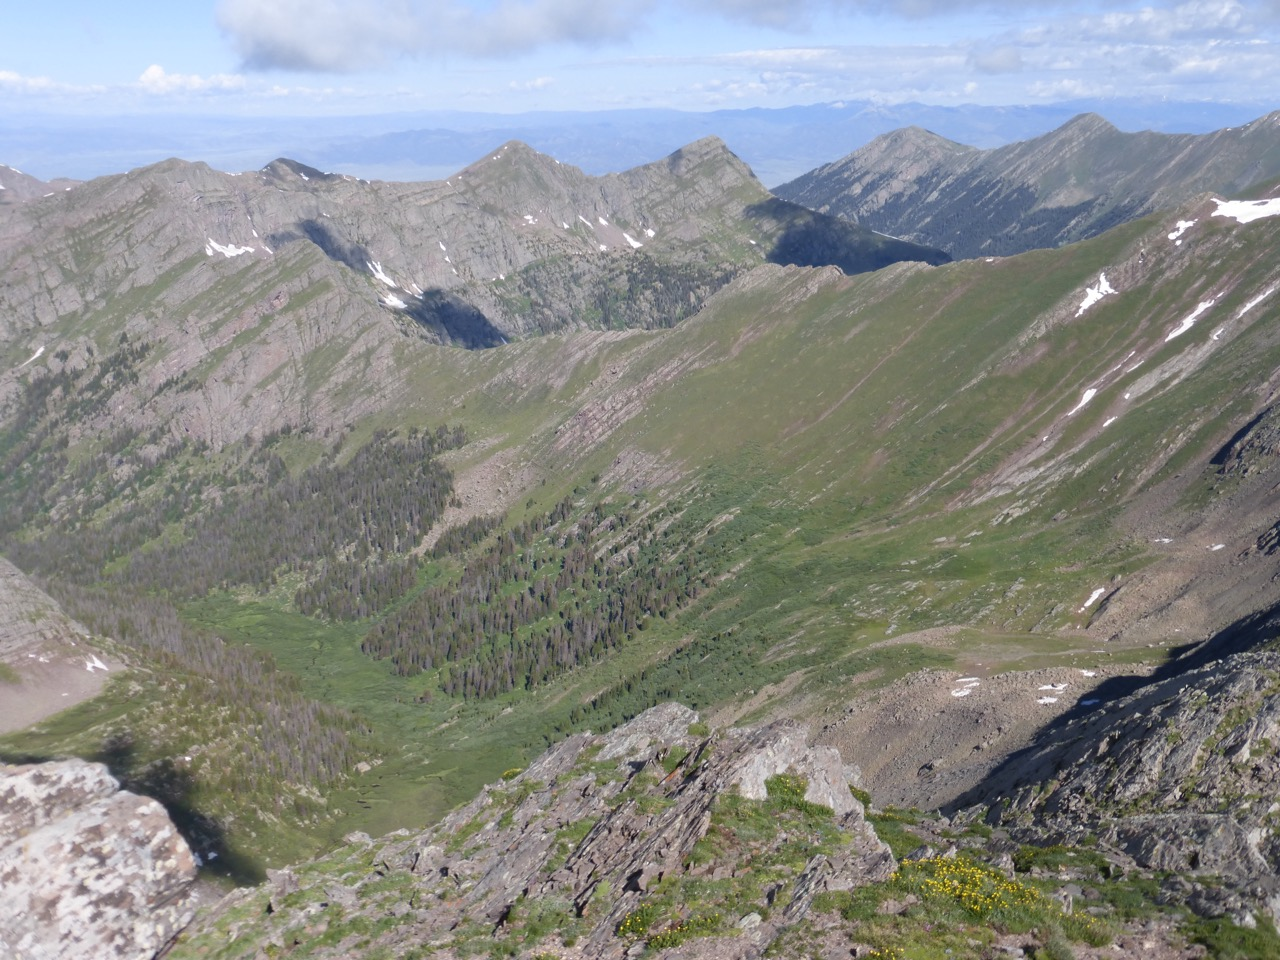 And here's our view across the valley west of Eureka to the Hermit-028 ridge.